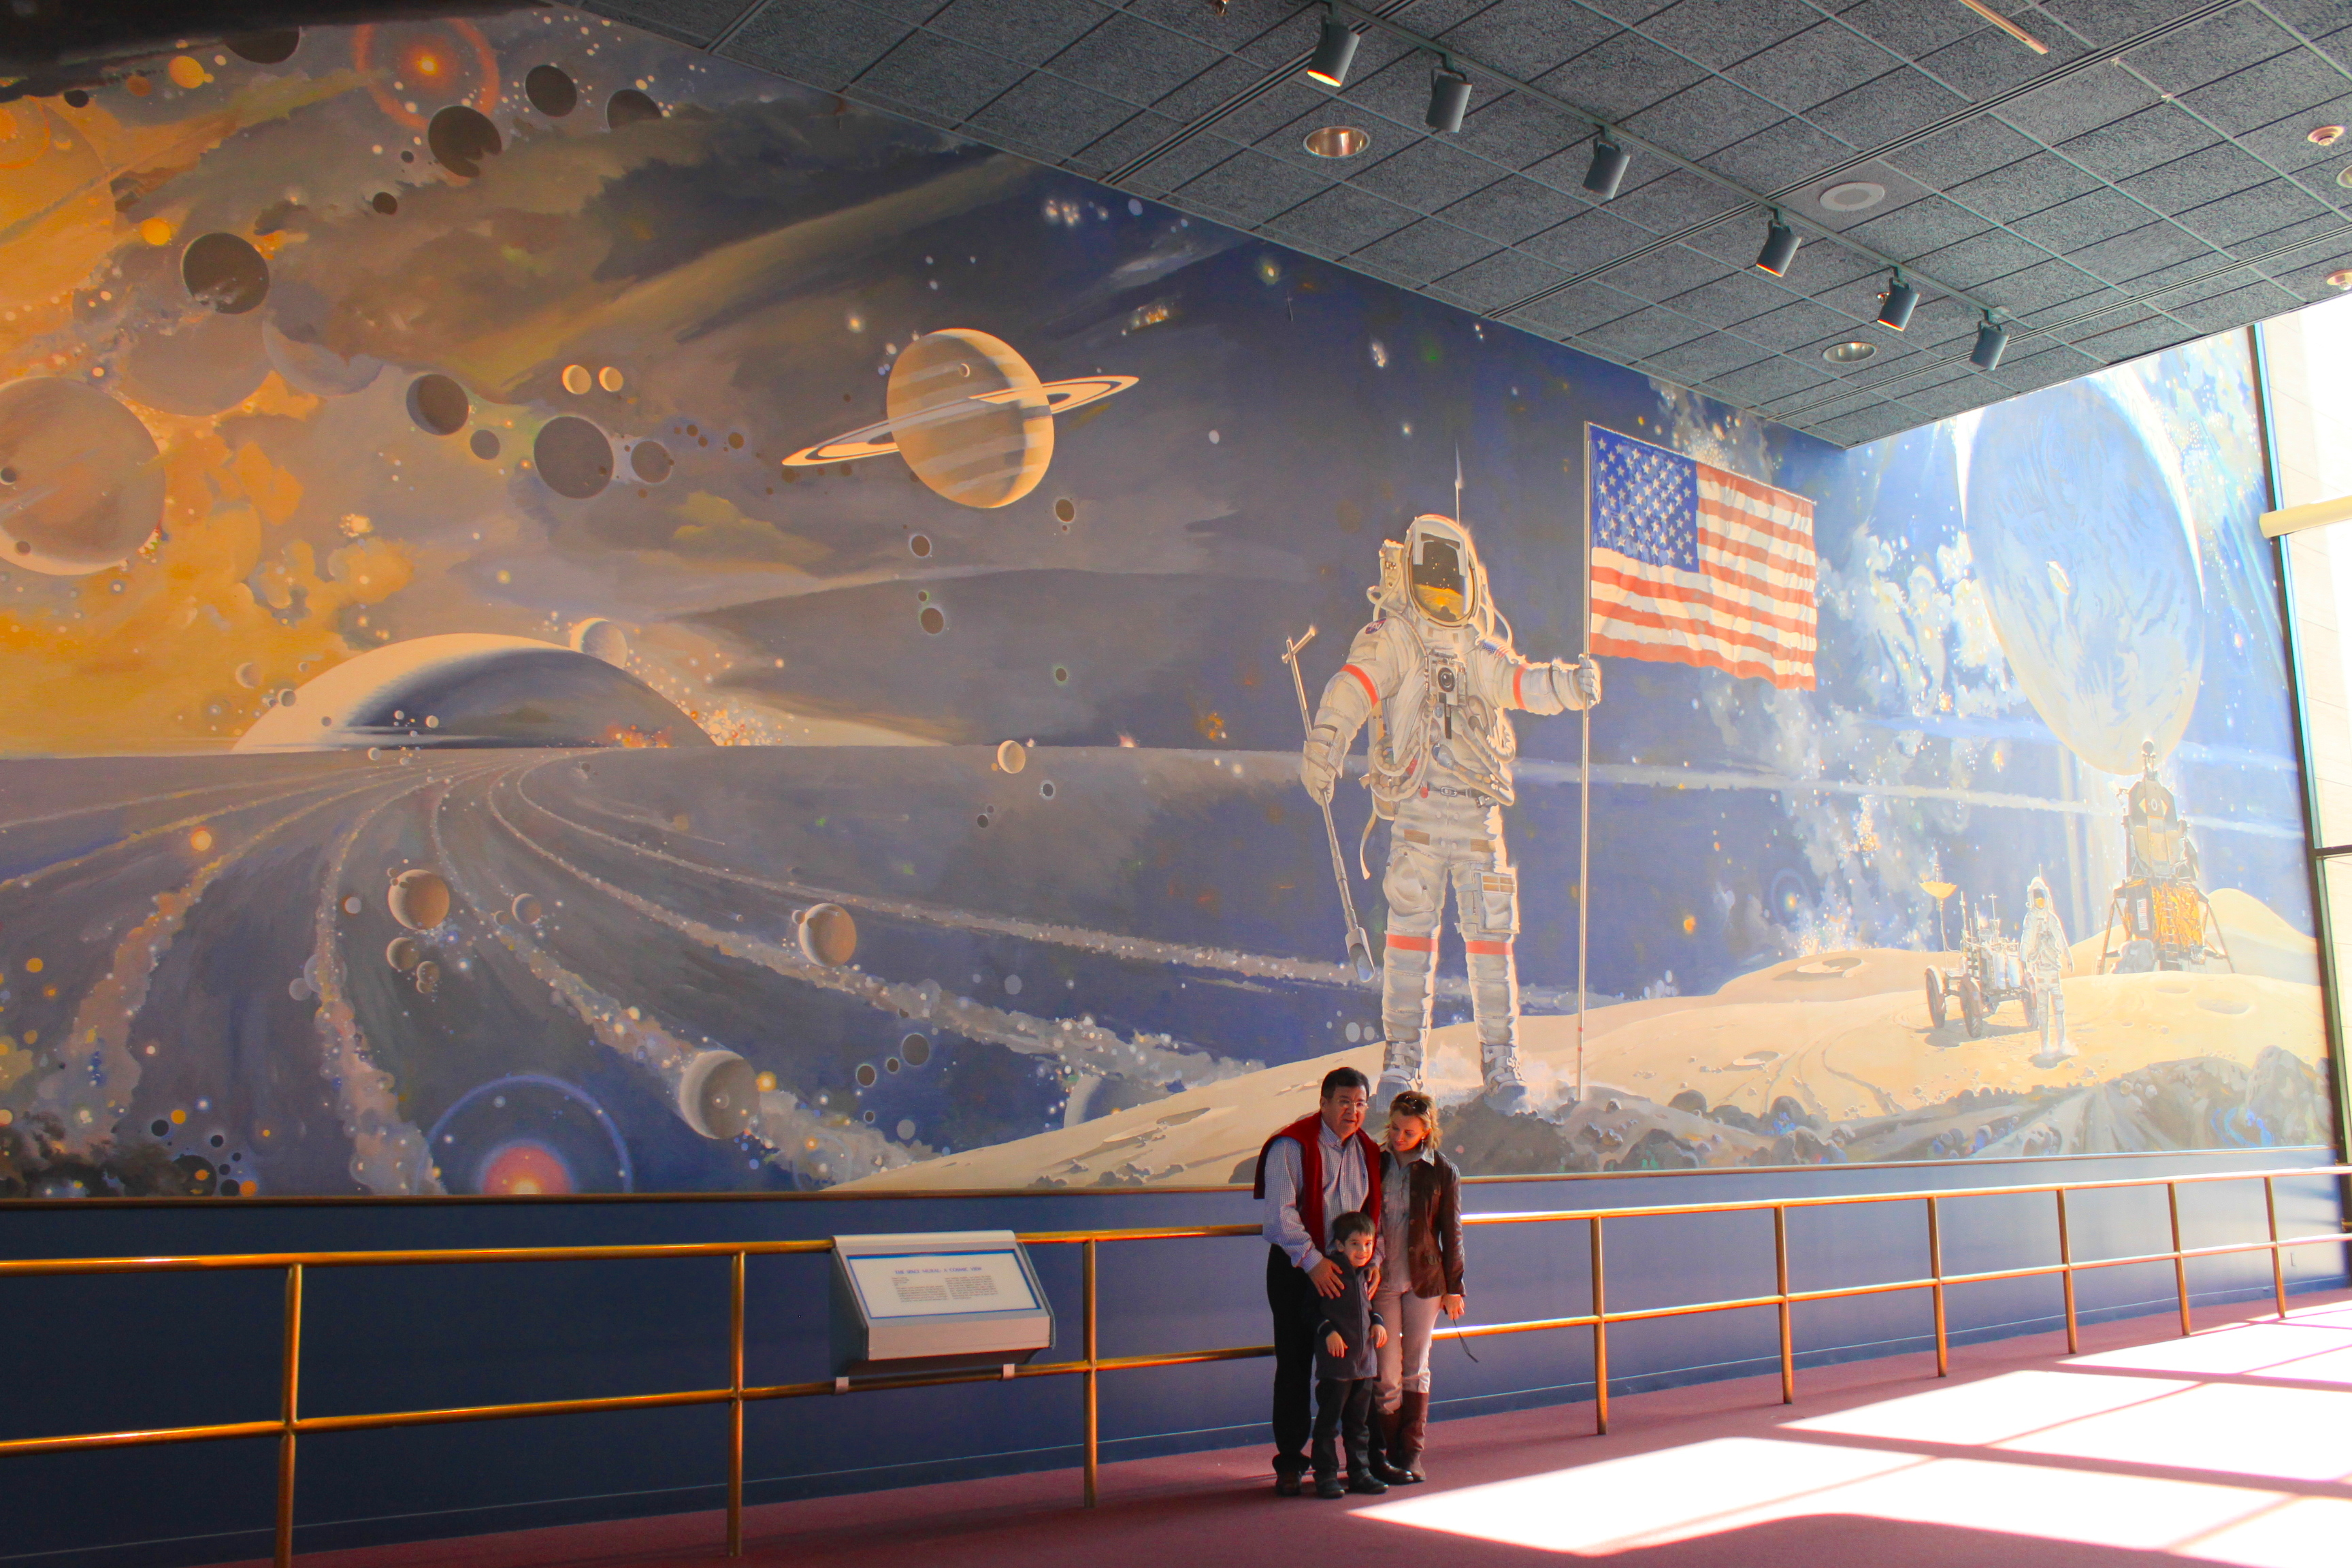 """Da grande voglio fare l'astronauta"" - National Air and Space Museum"